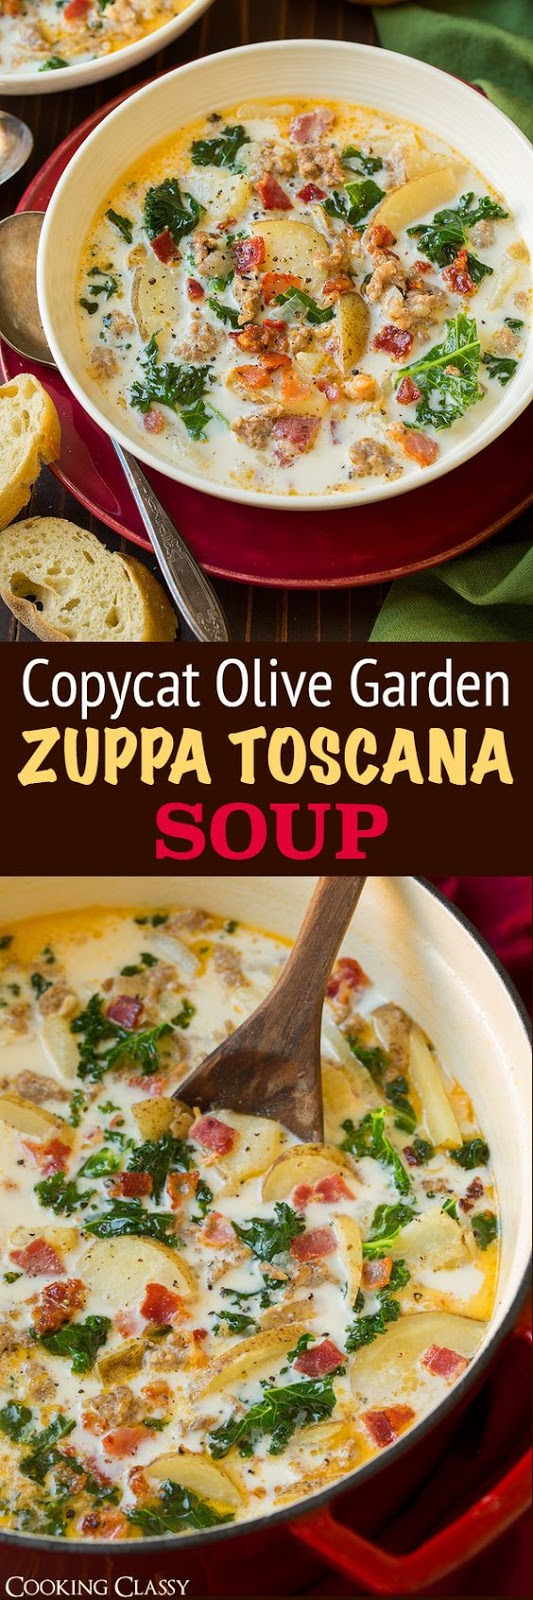 Zuppa Toscana Soup #soup #zuppa #toscana #dinner #maincourse